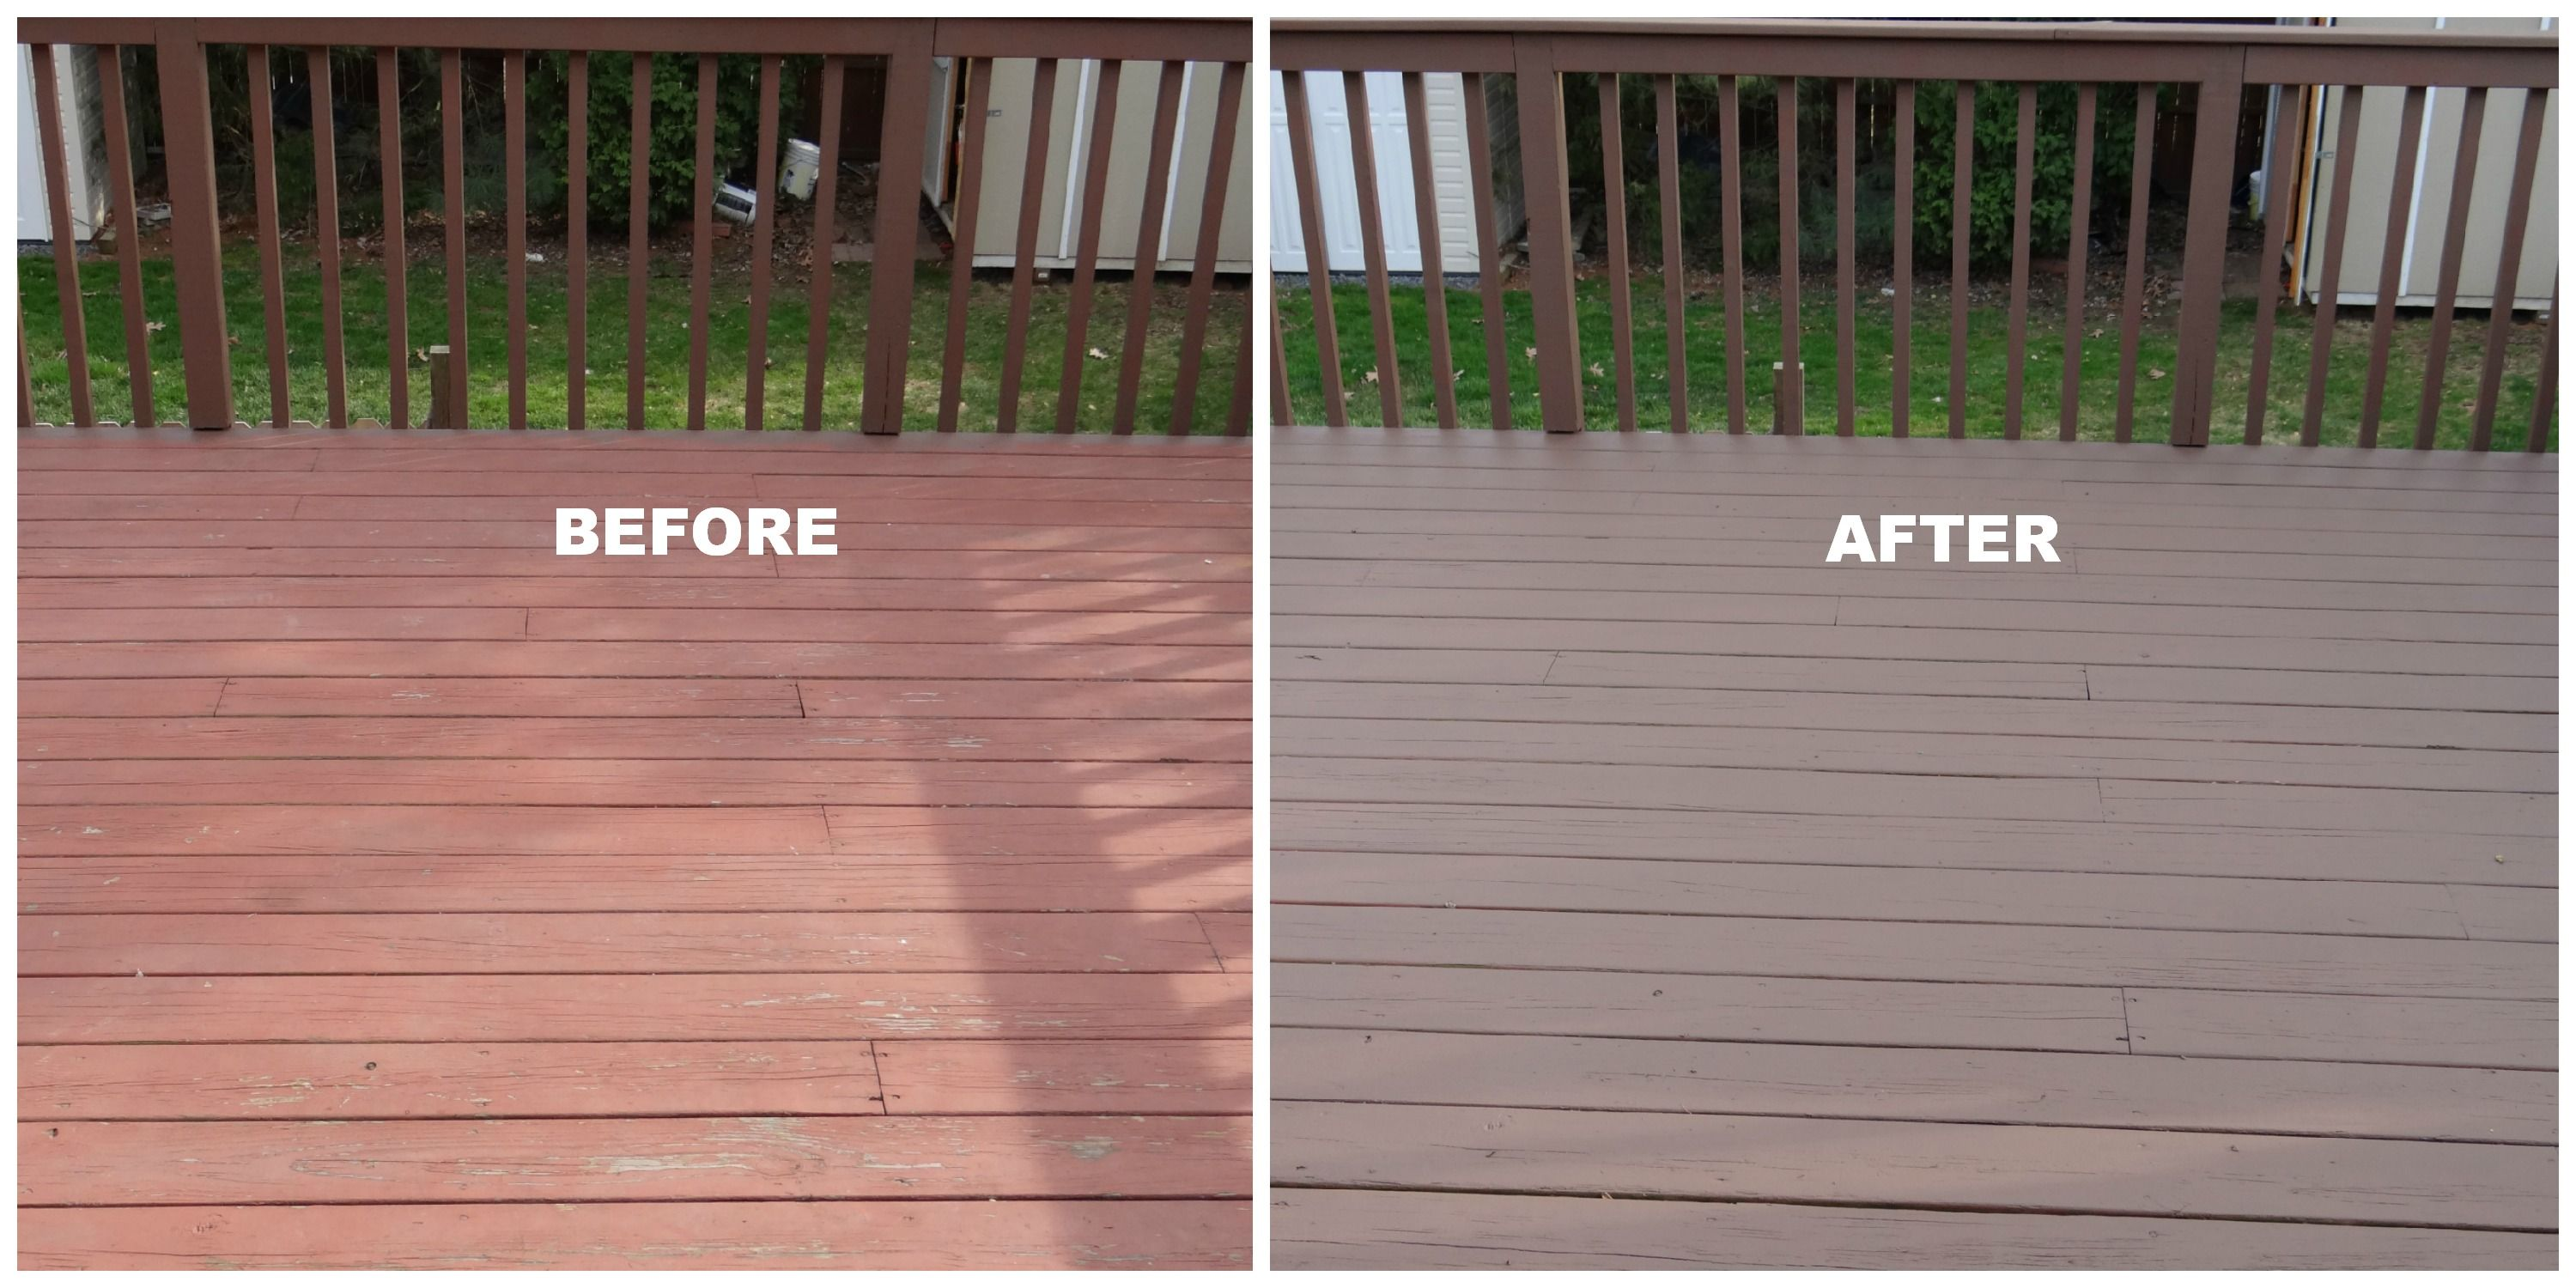 5 Things We Realize From Repainting Deck Beauteeful Living Deck Paint Reviews Painted Outdoor Decks Wood Deck Colors